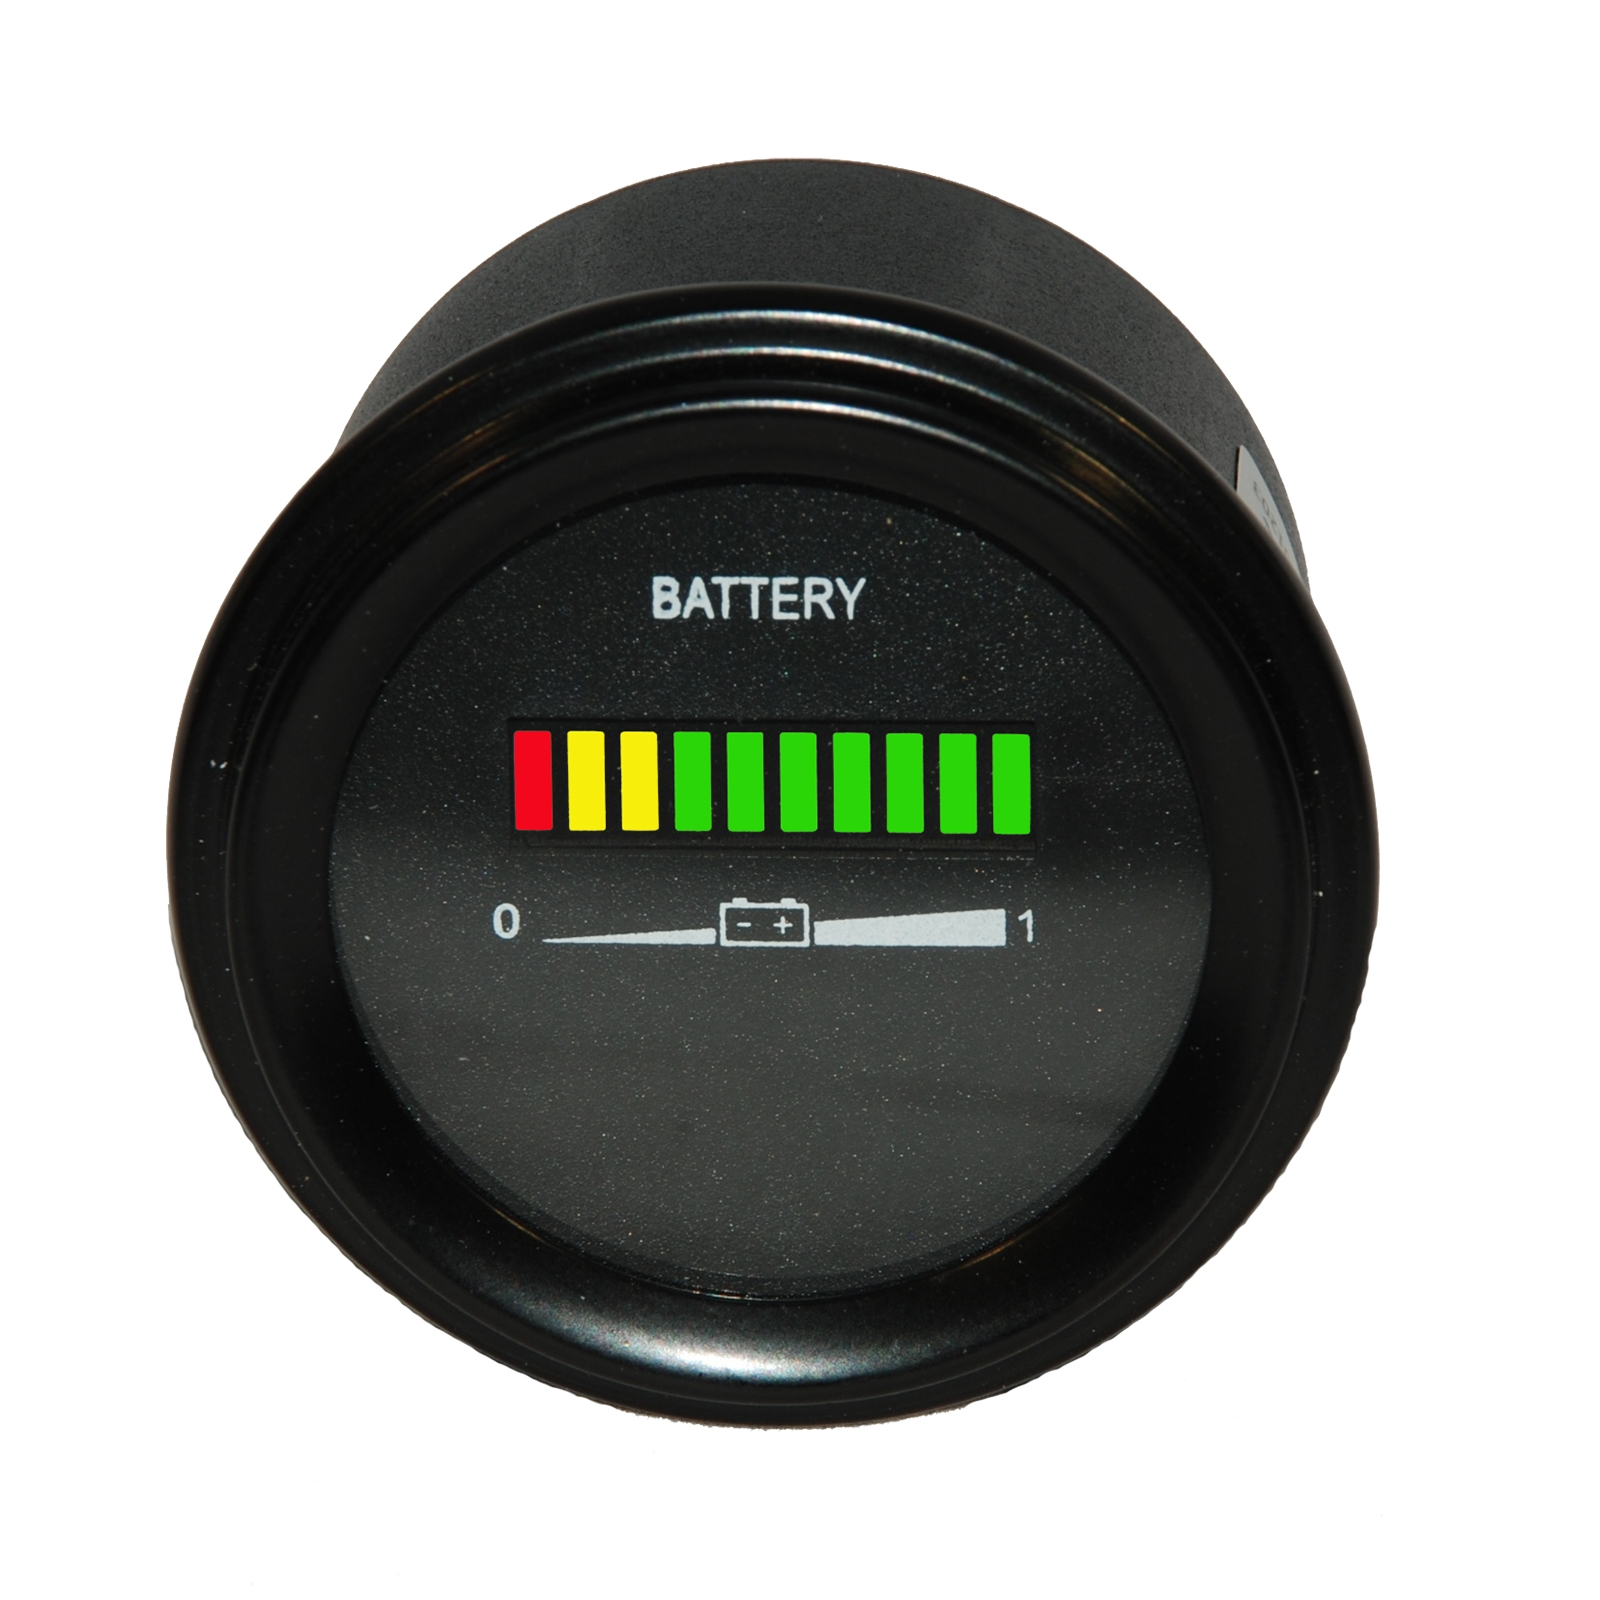 PROXXRC Battery Charge Meter